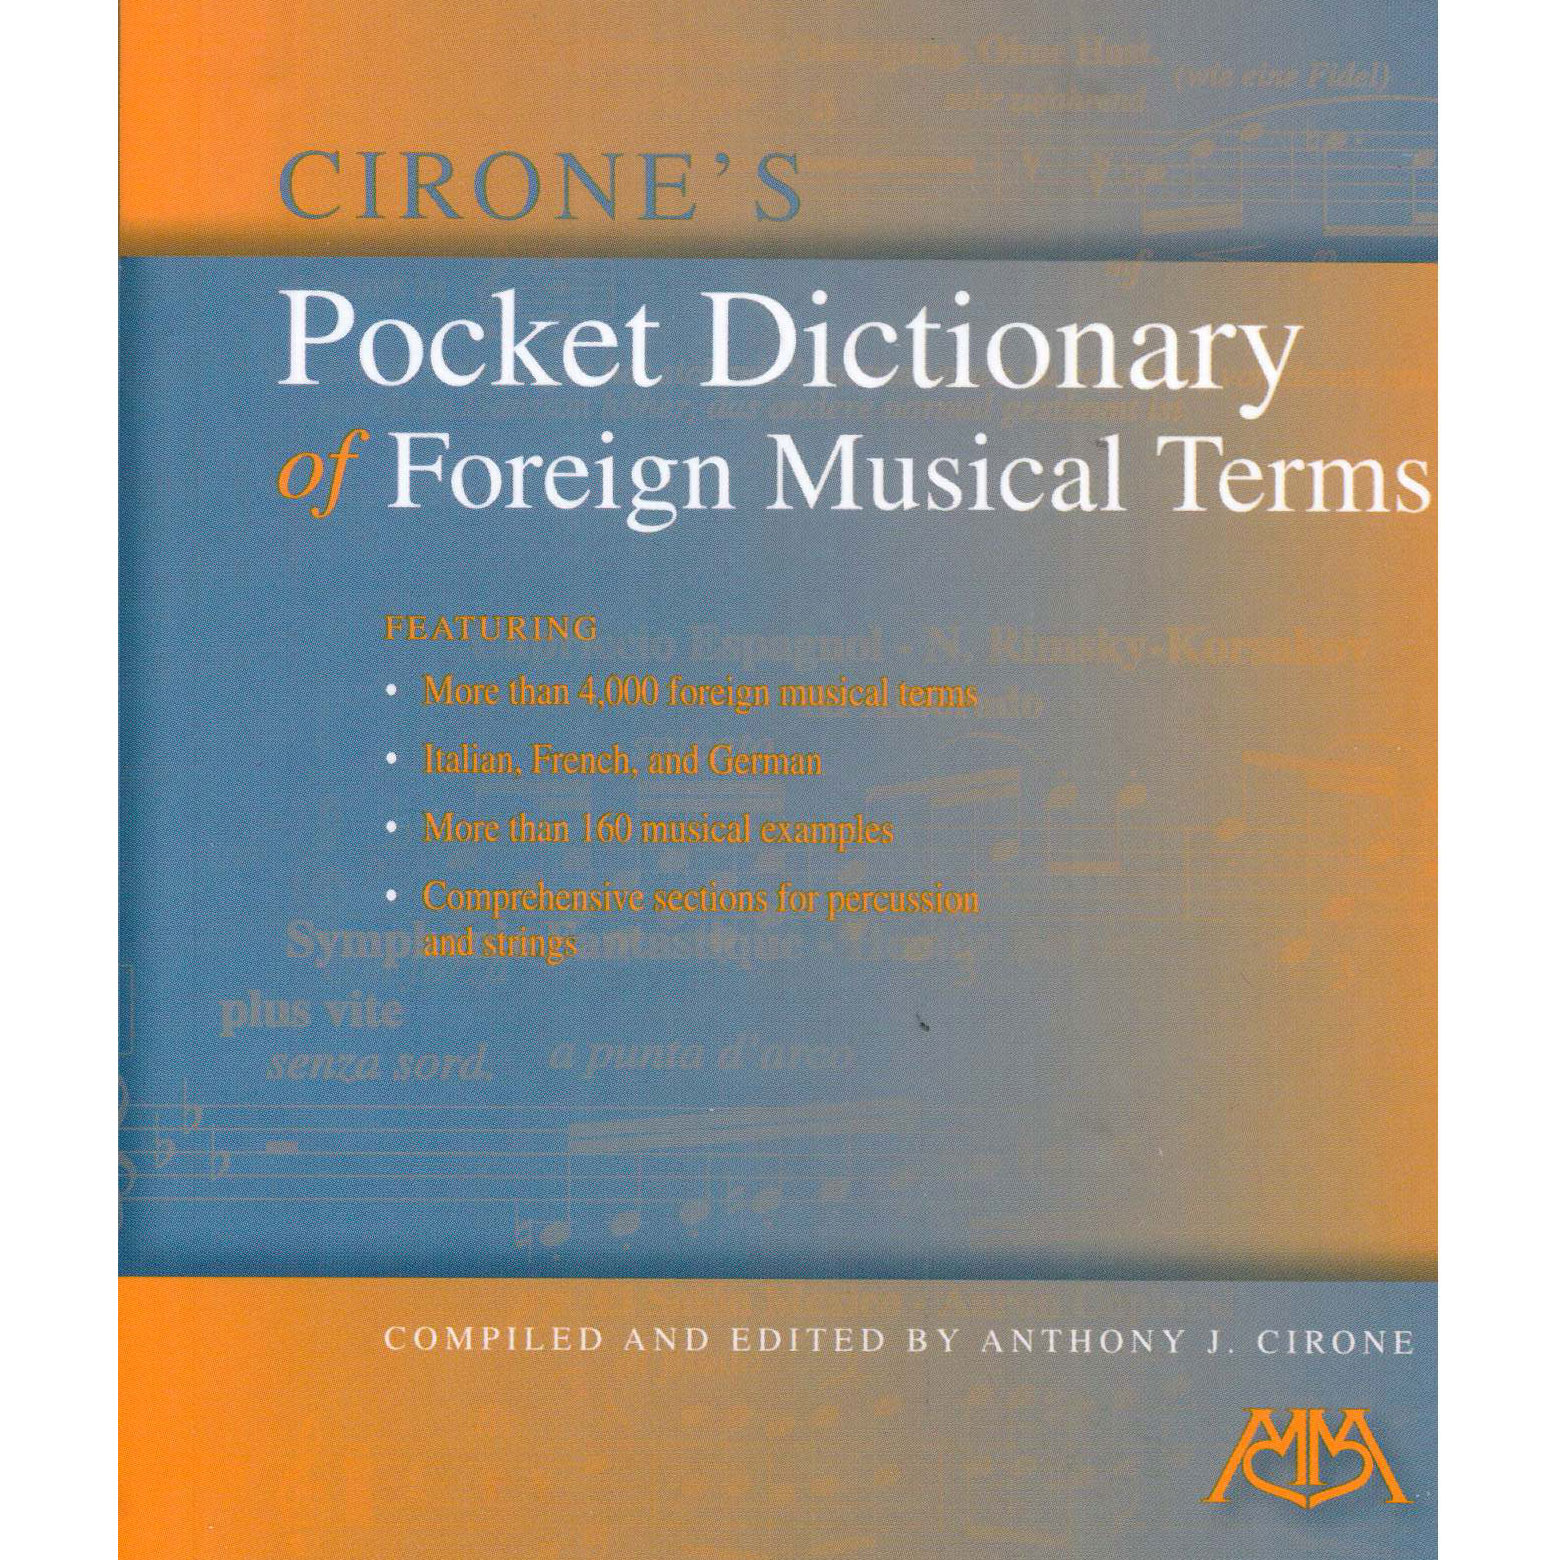 Pocket Dictionary of Foreign Musical Terms by Anthony Cirone